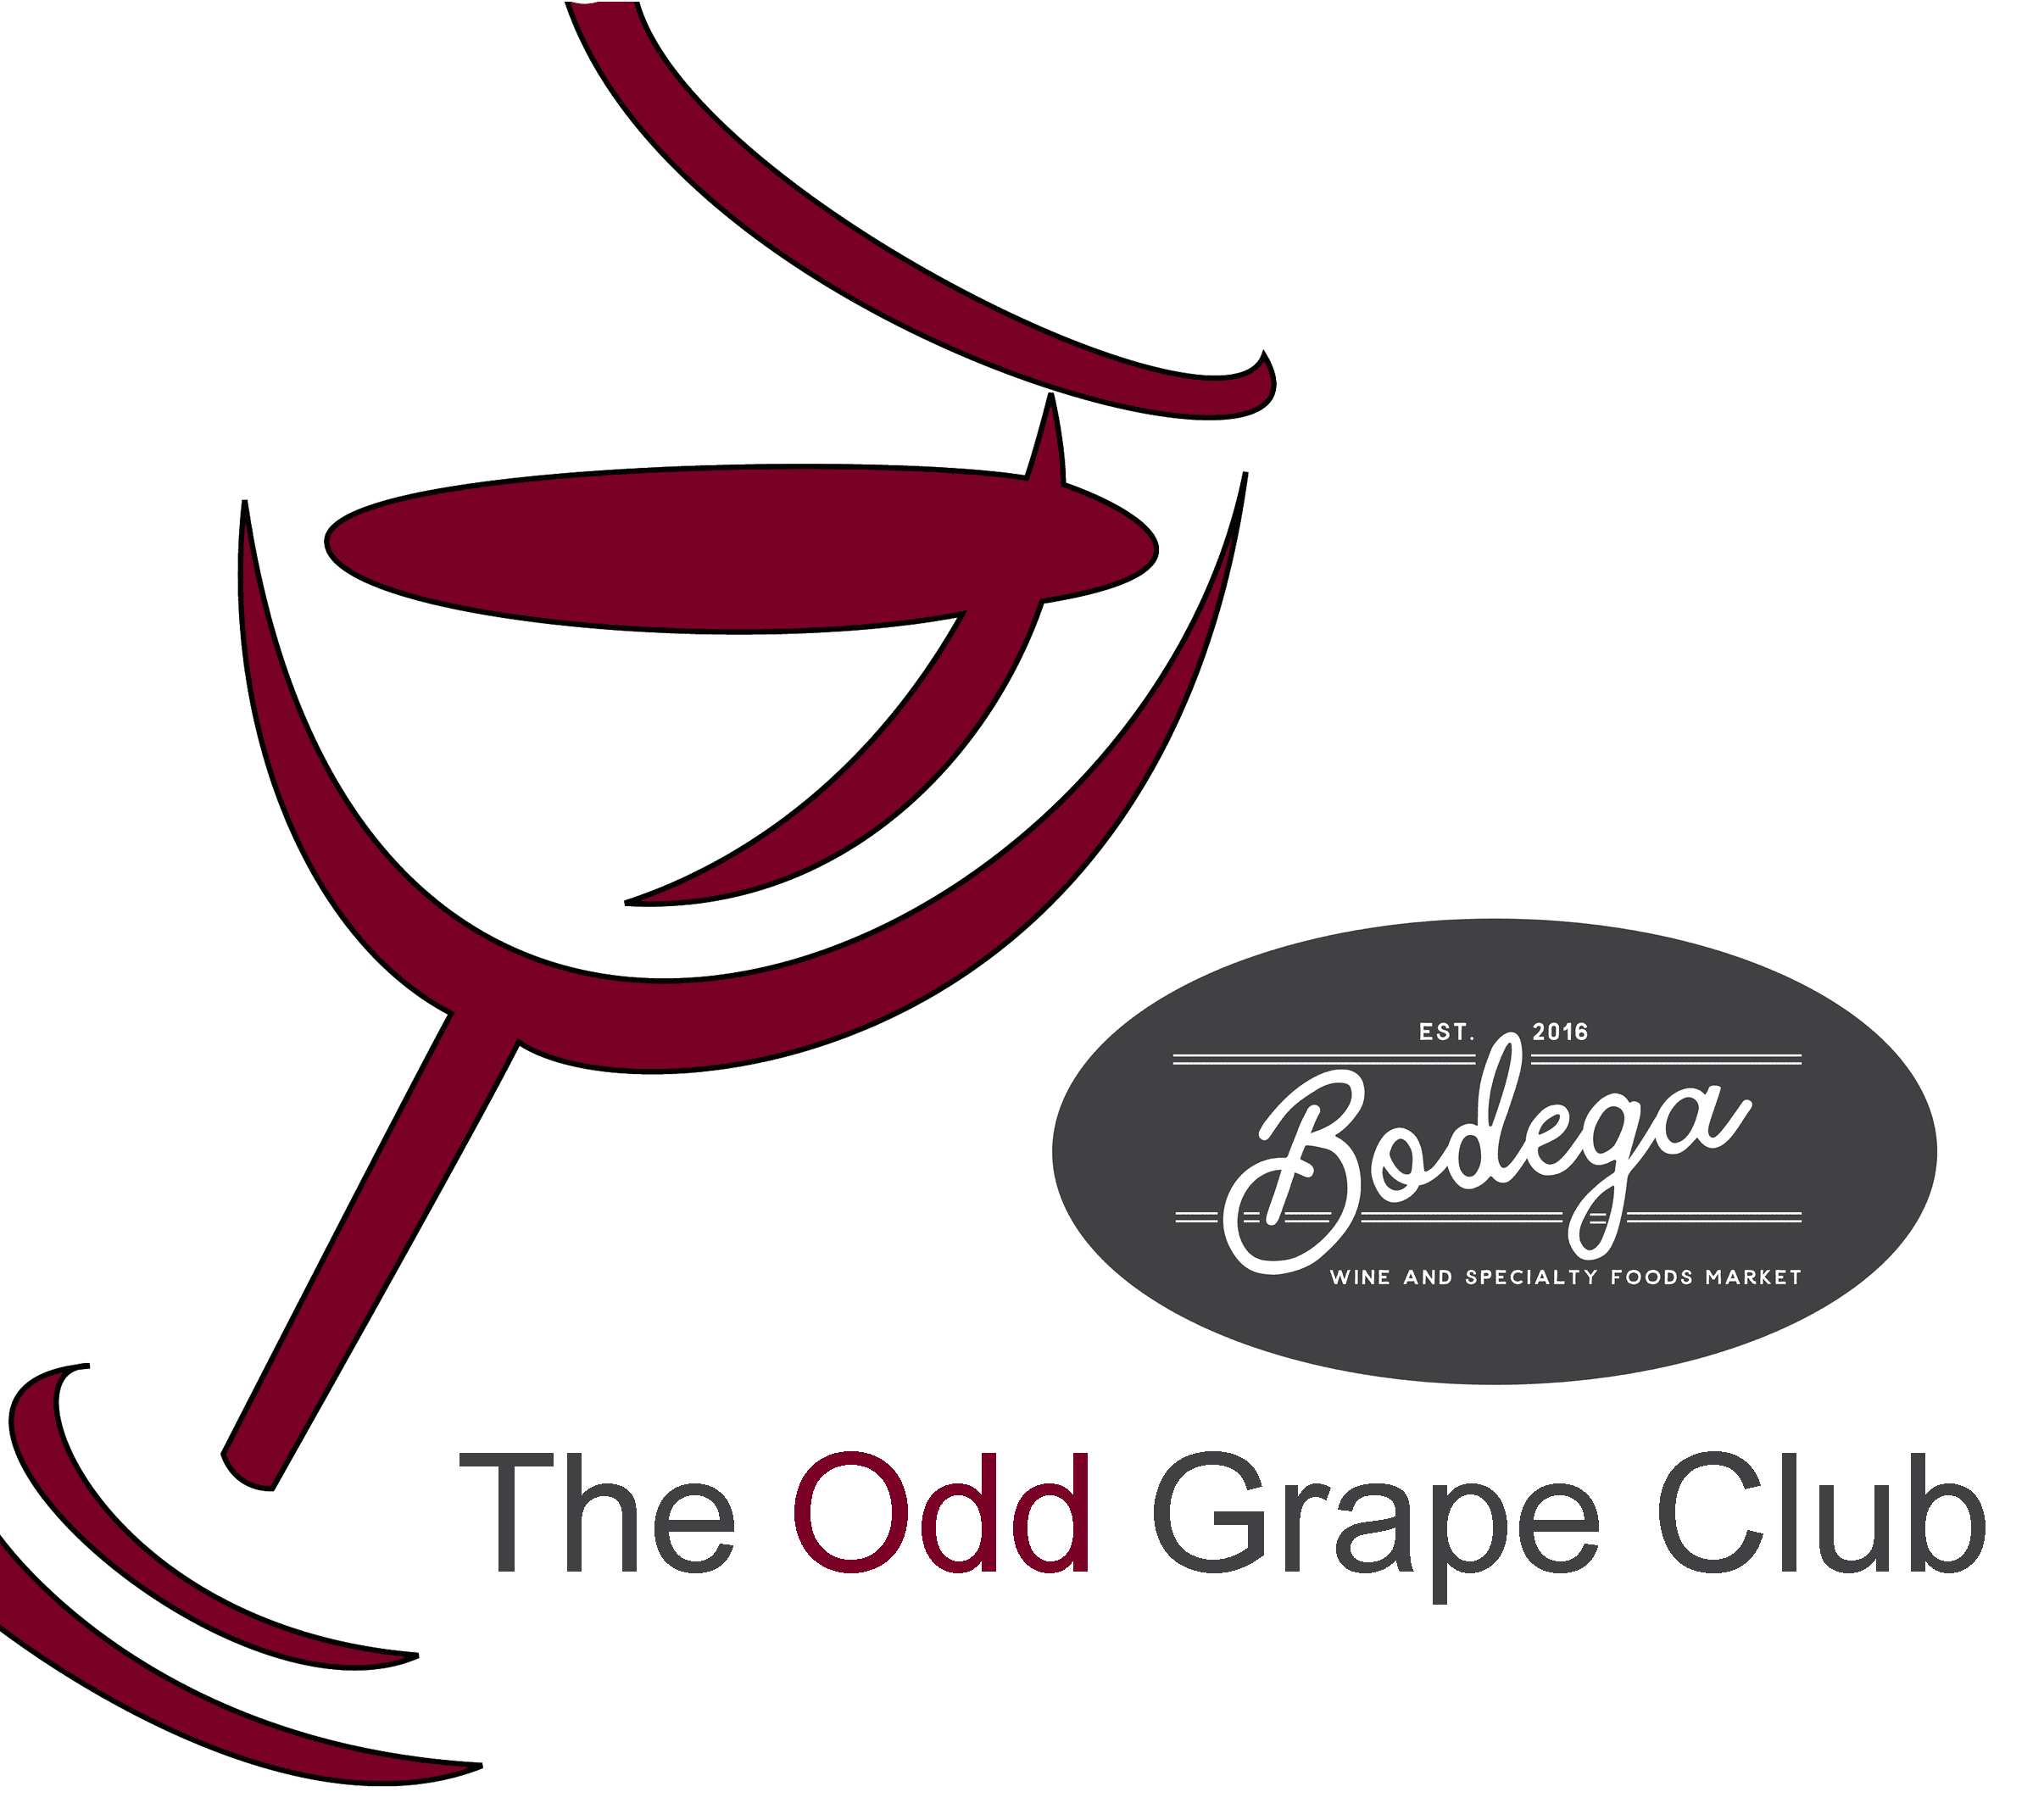 Odd Grape Club